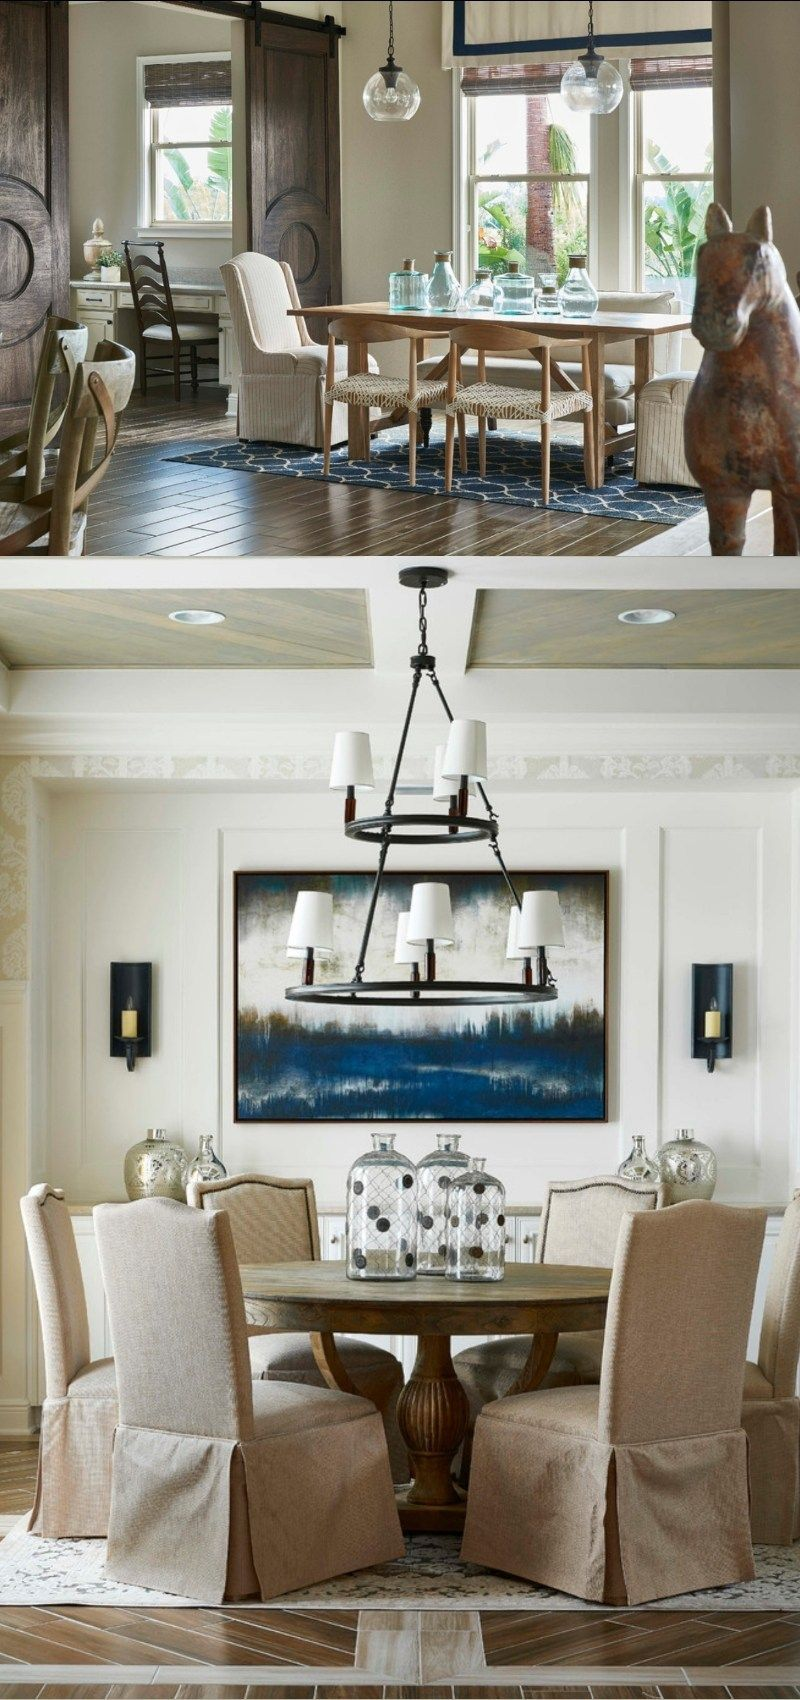 Dining Room Table Centerpieces Ideas Dining Table Centerpiece Modern Dining Room Modern Dining Room Tables